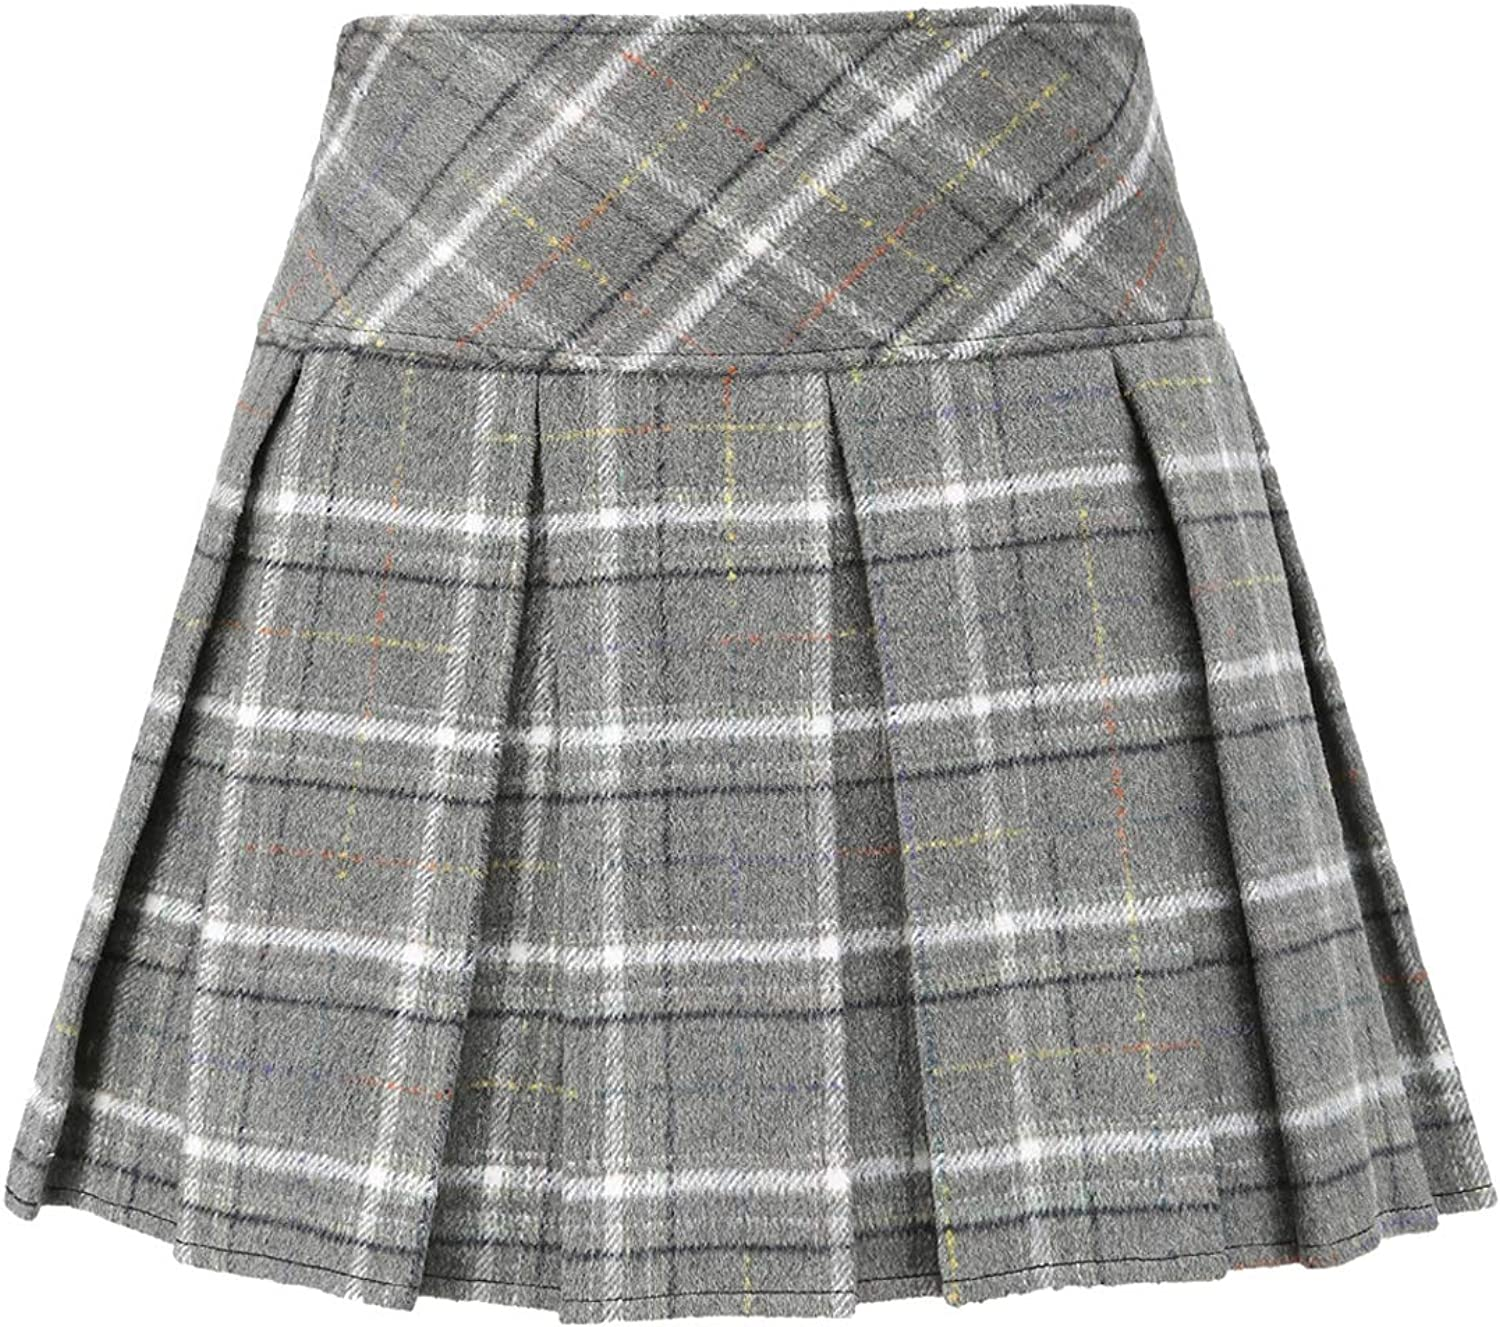 Max 56% OFF ZHANCHTONG Women's Casual Wool High Limited time trial price Short Plaid Min A-Line Waist